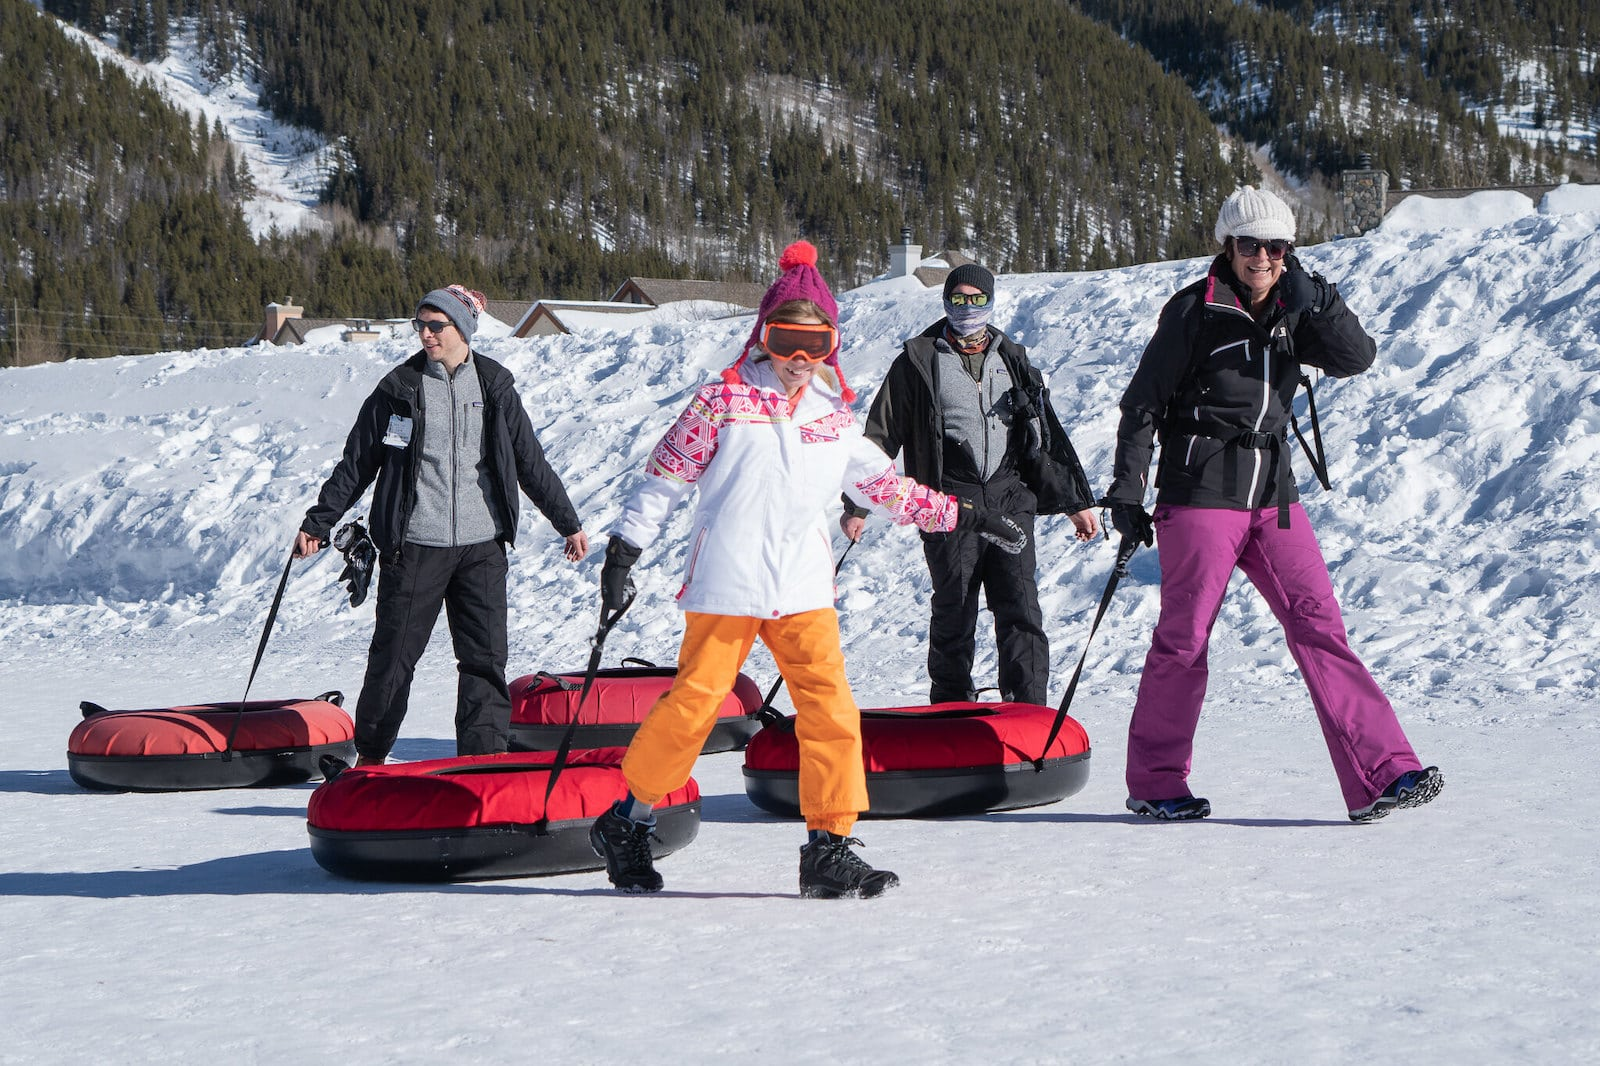 Image of people pulling snow tubes in Copper Mountain, Colorado